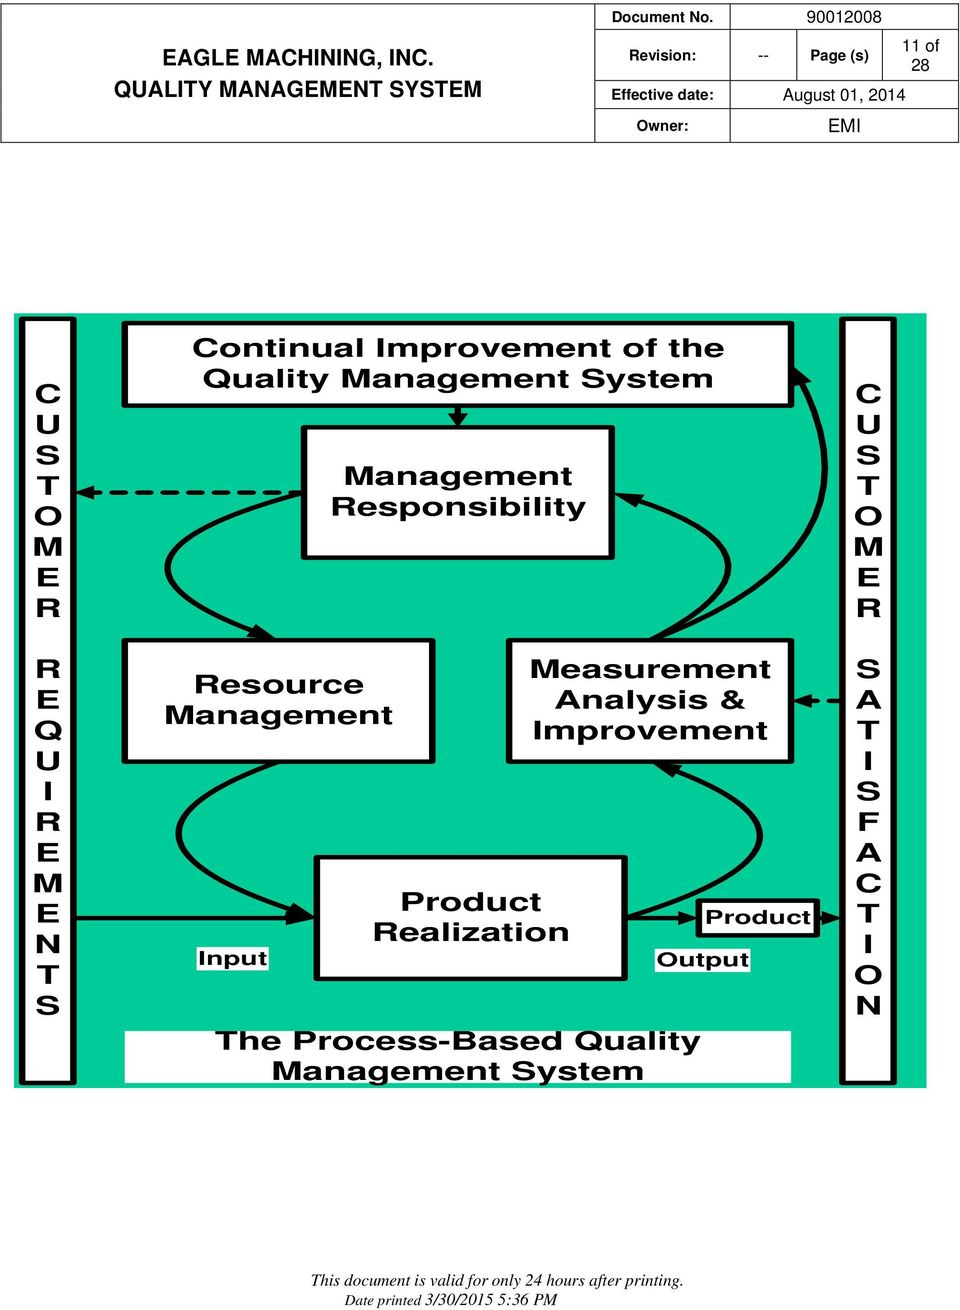 Responsibility Product Realization Measurement Analysis & Improvement The